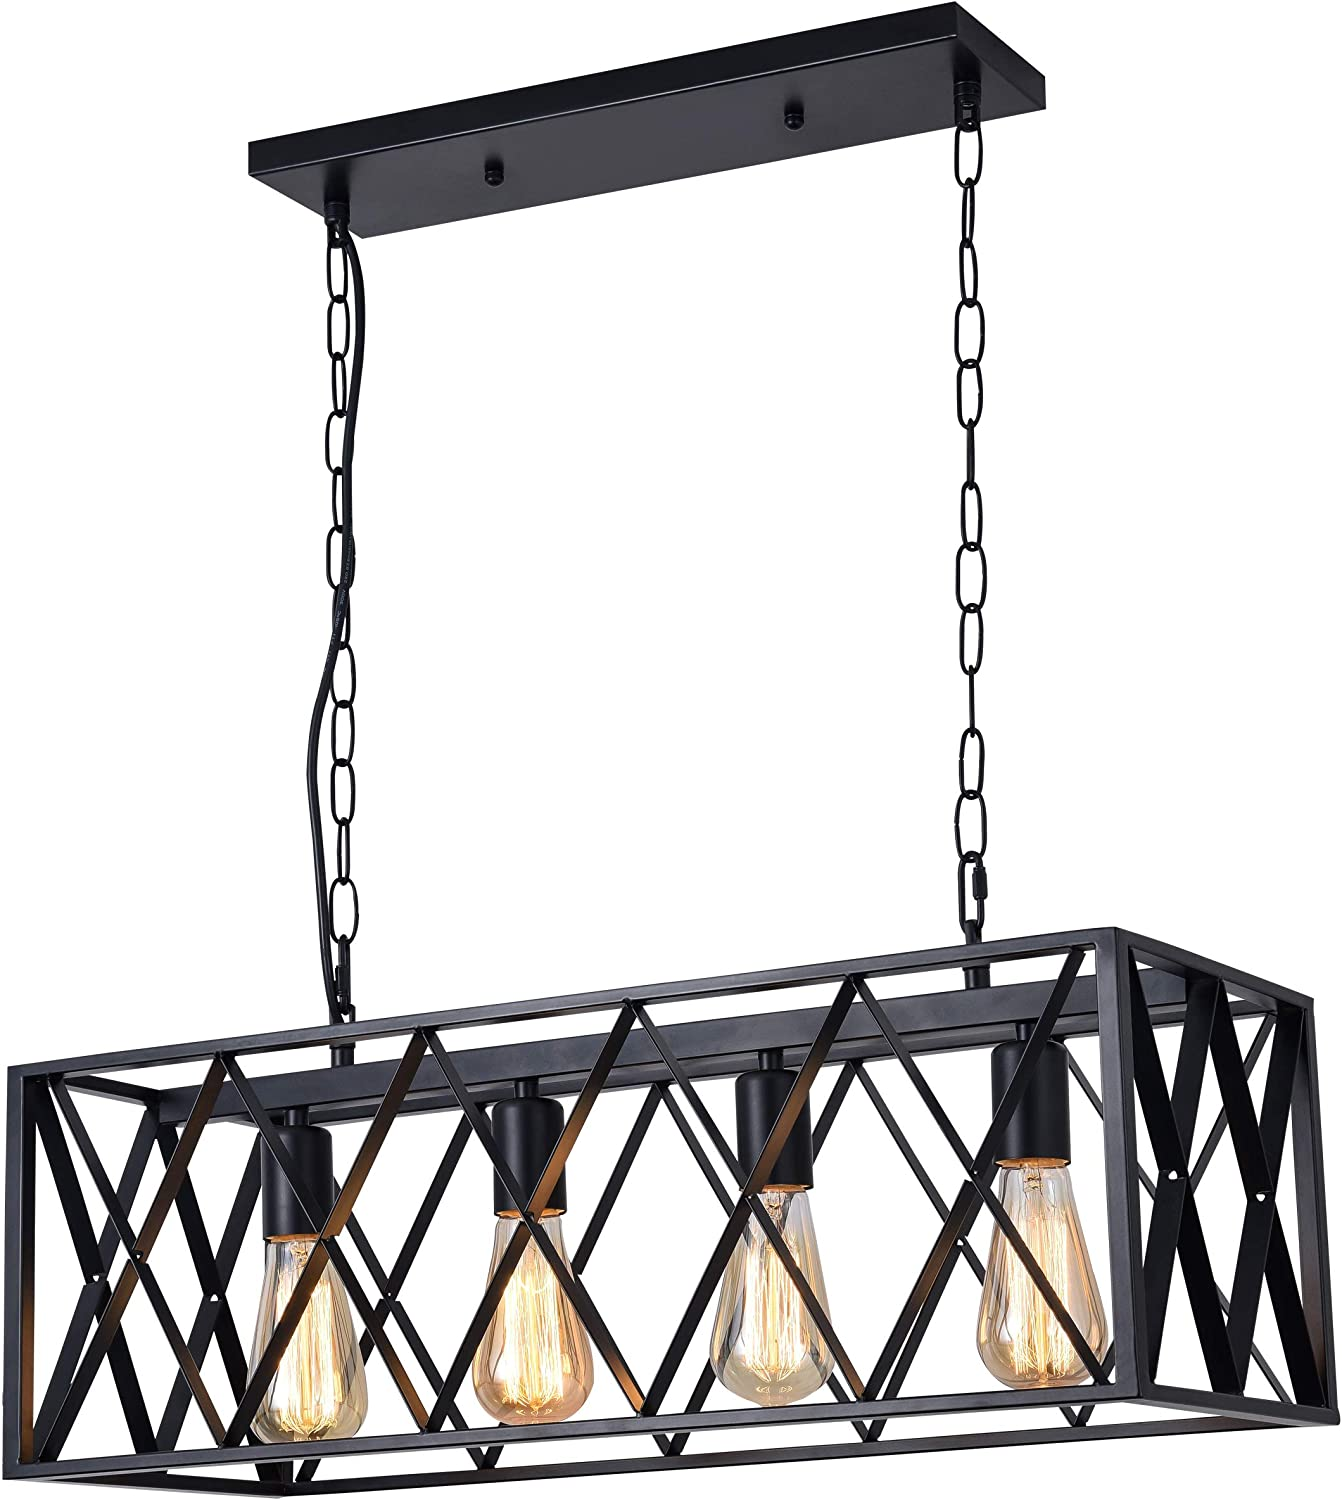 free Diborui Product Industrial Kitchen Island Lighting Sockets 4 with E26 R